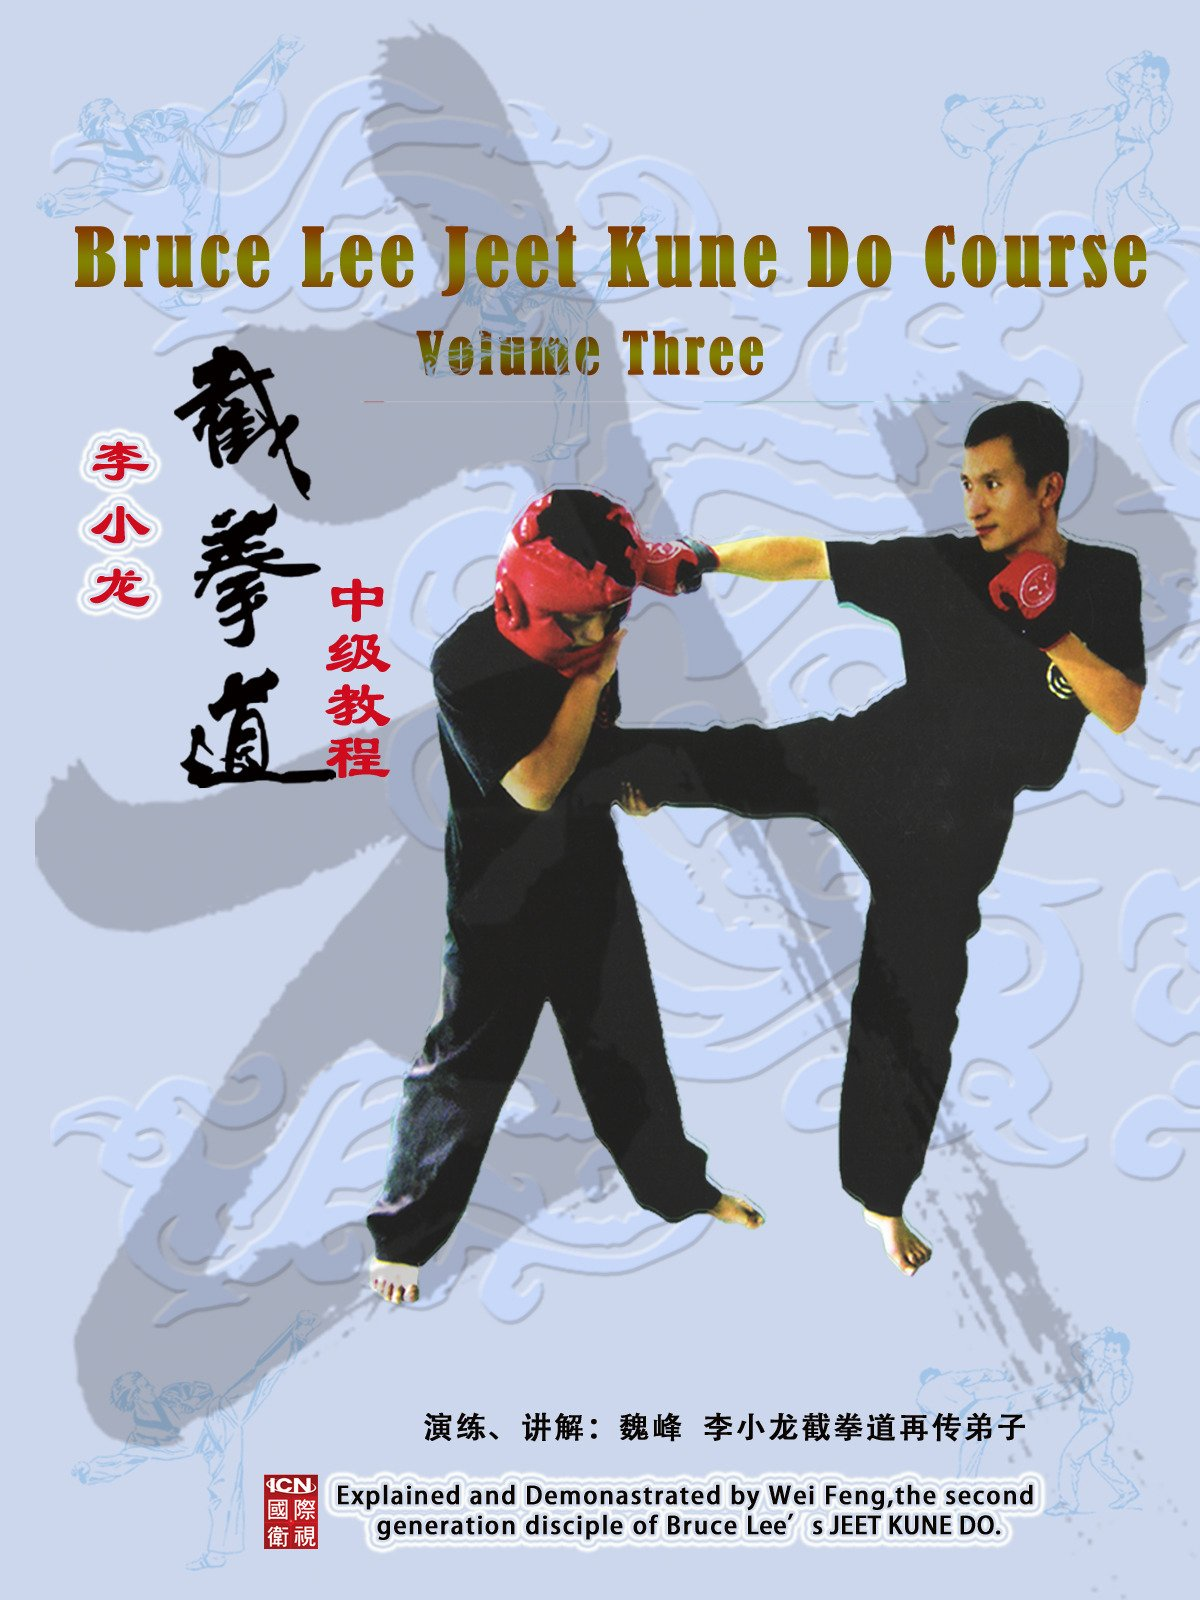 Bruce Lee Jeet Kune Do Course Volume Three